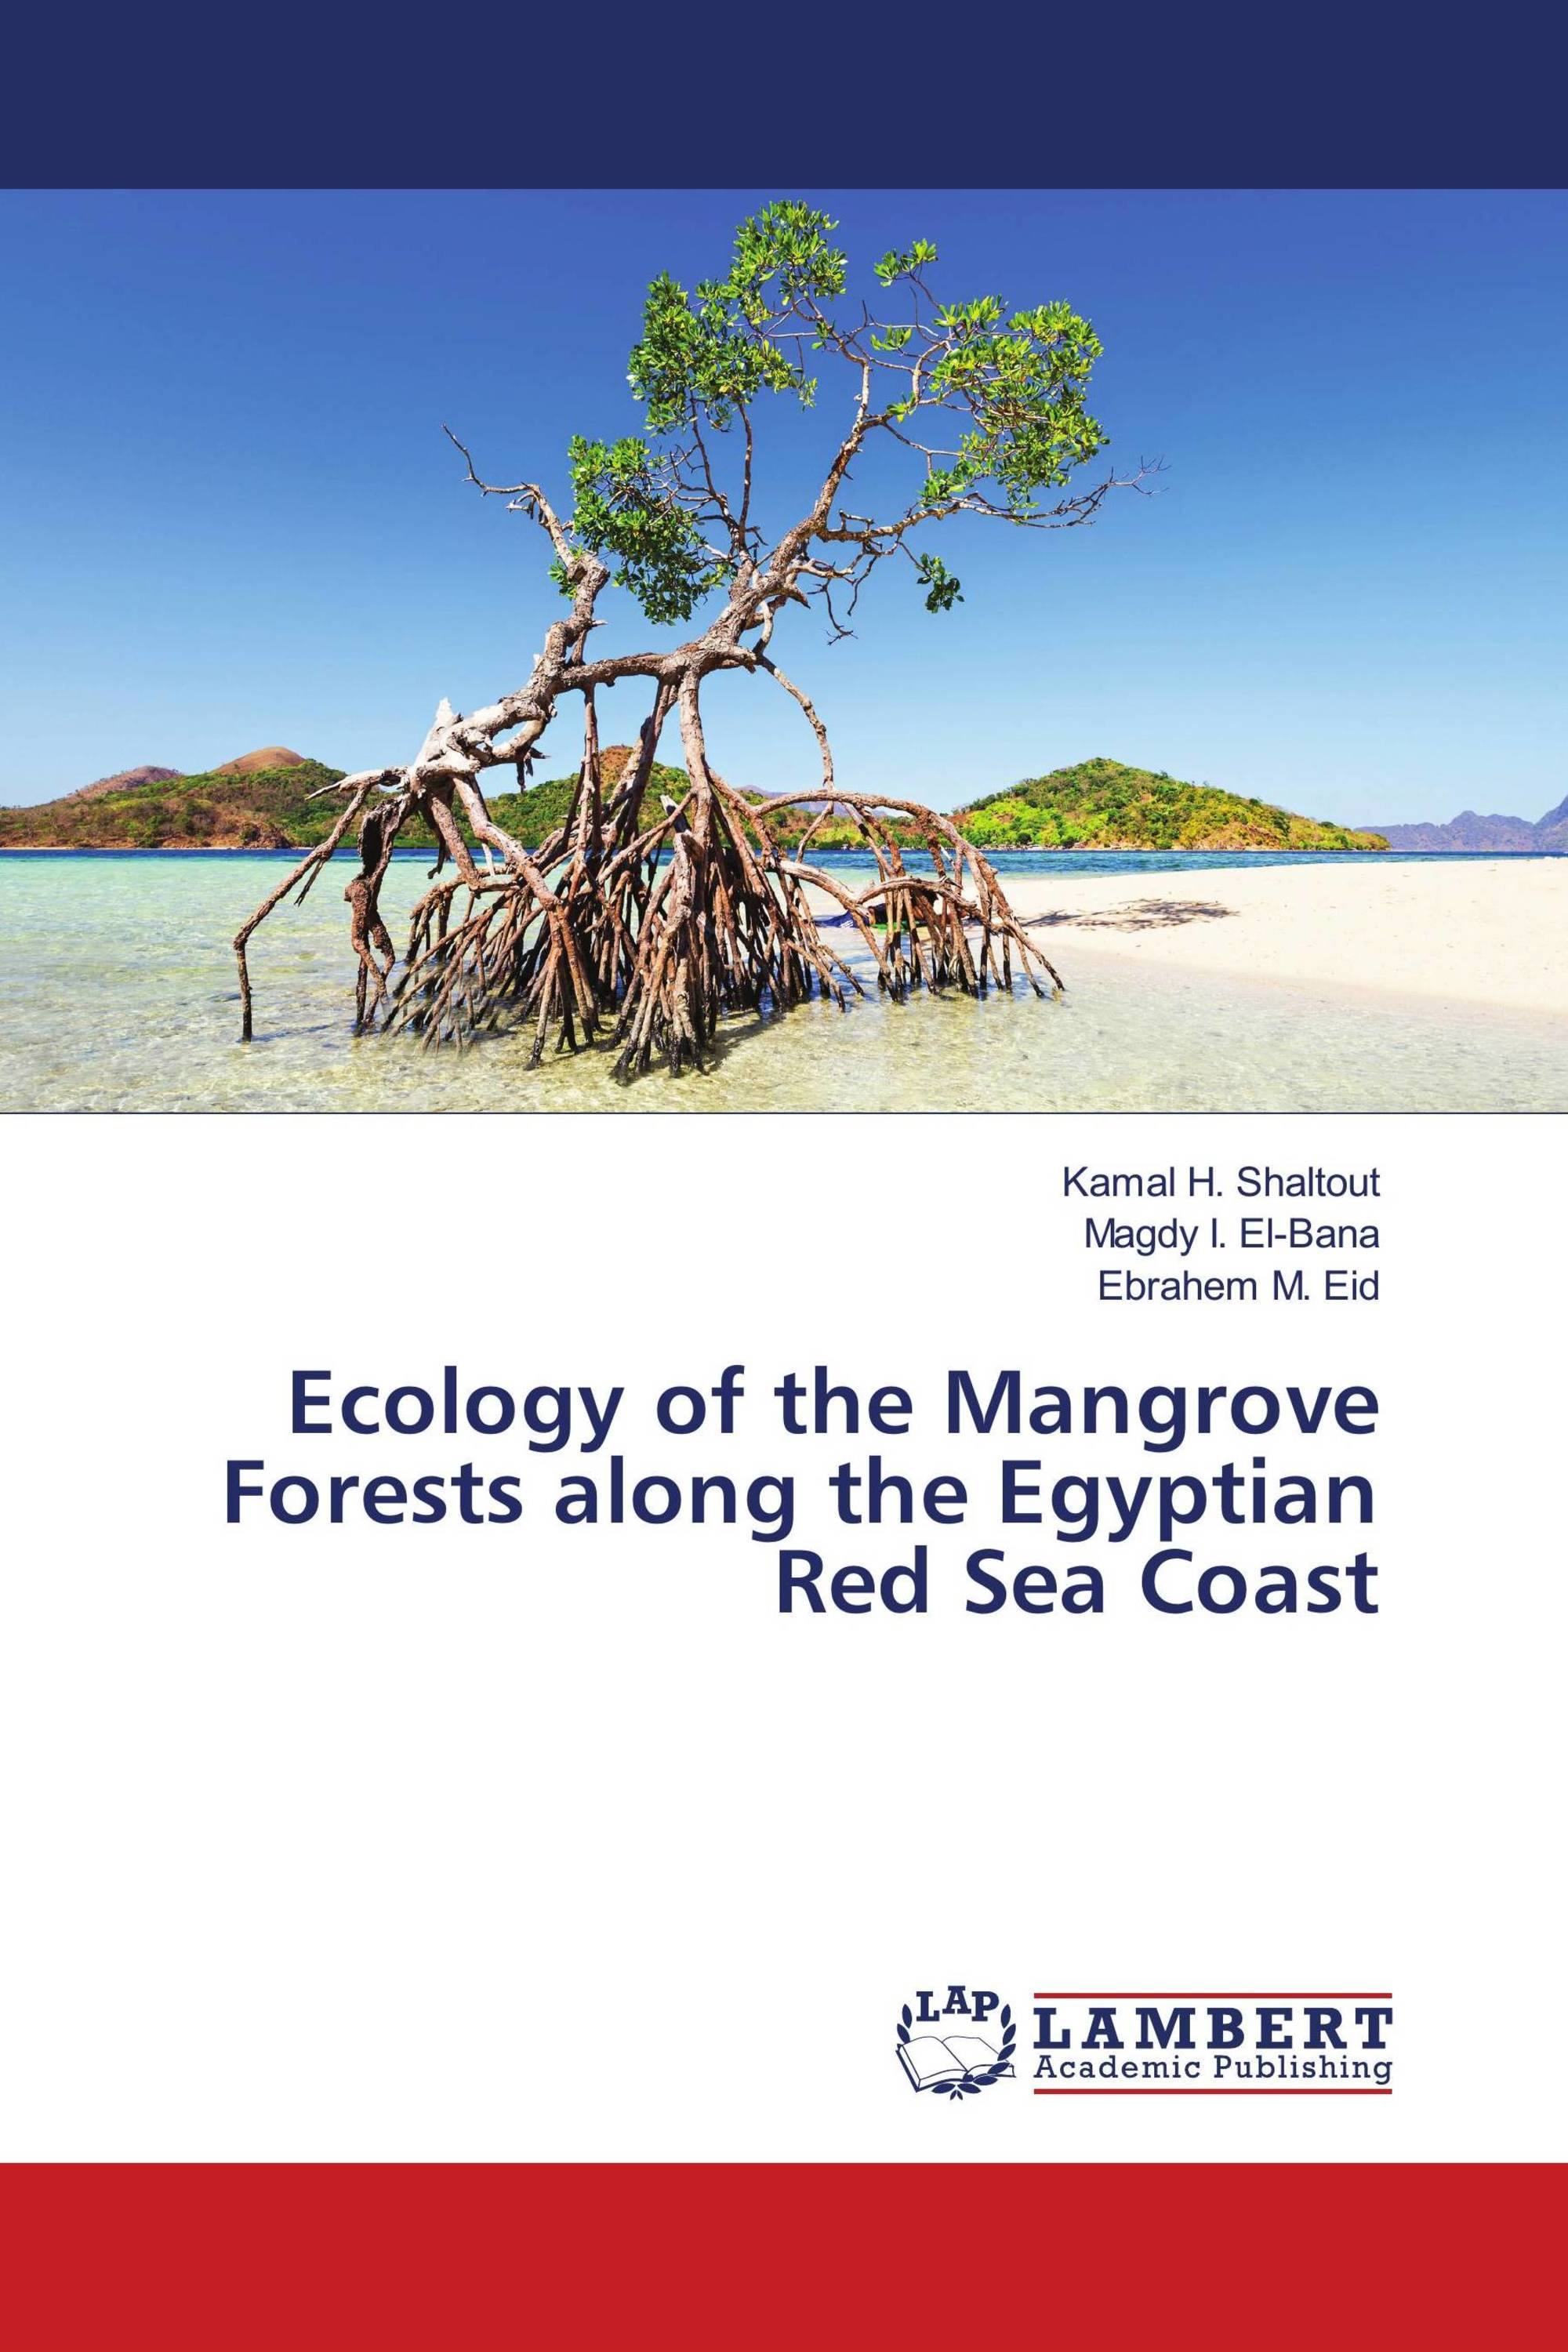 Ecology of the Mangrove Forests along the Egyptian Red Sea Coast